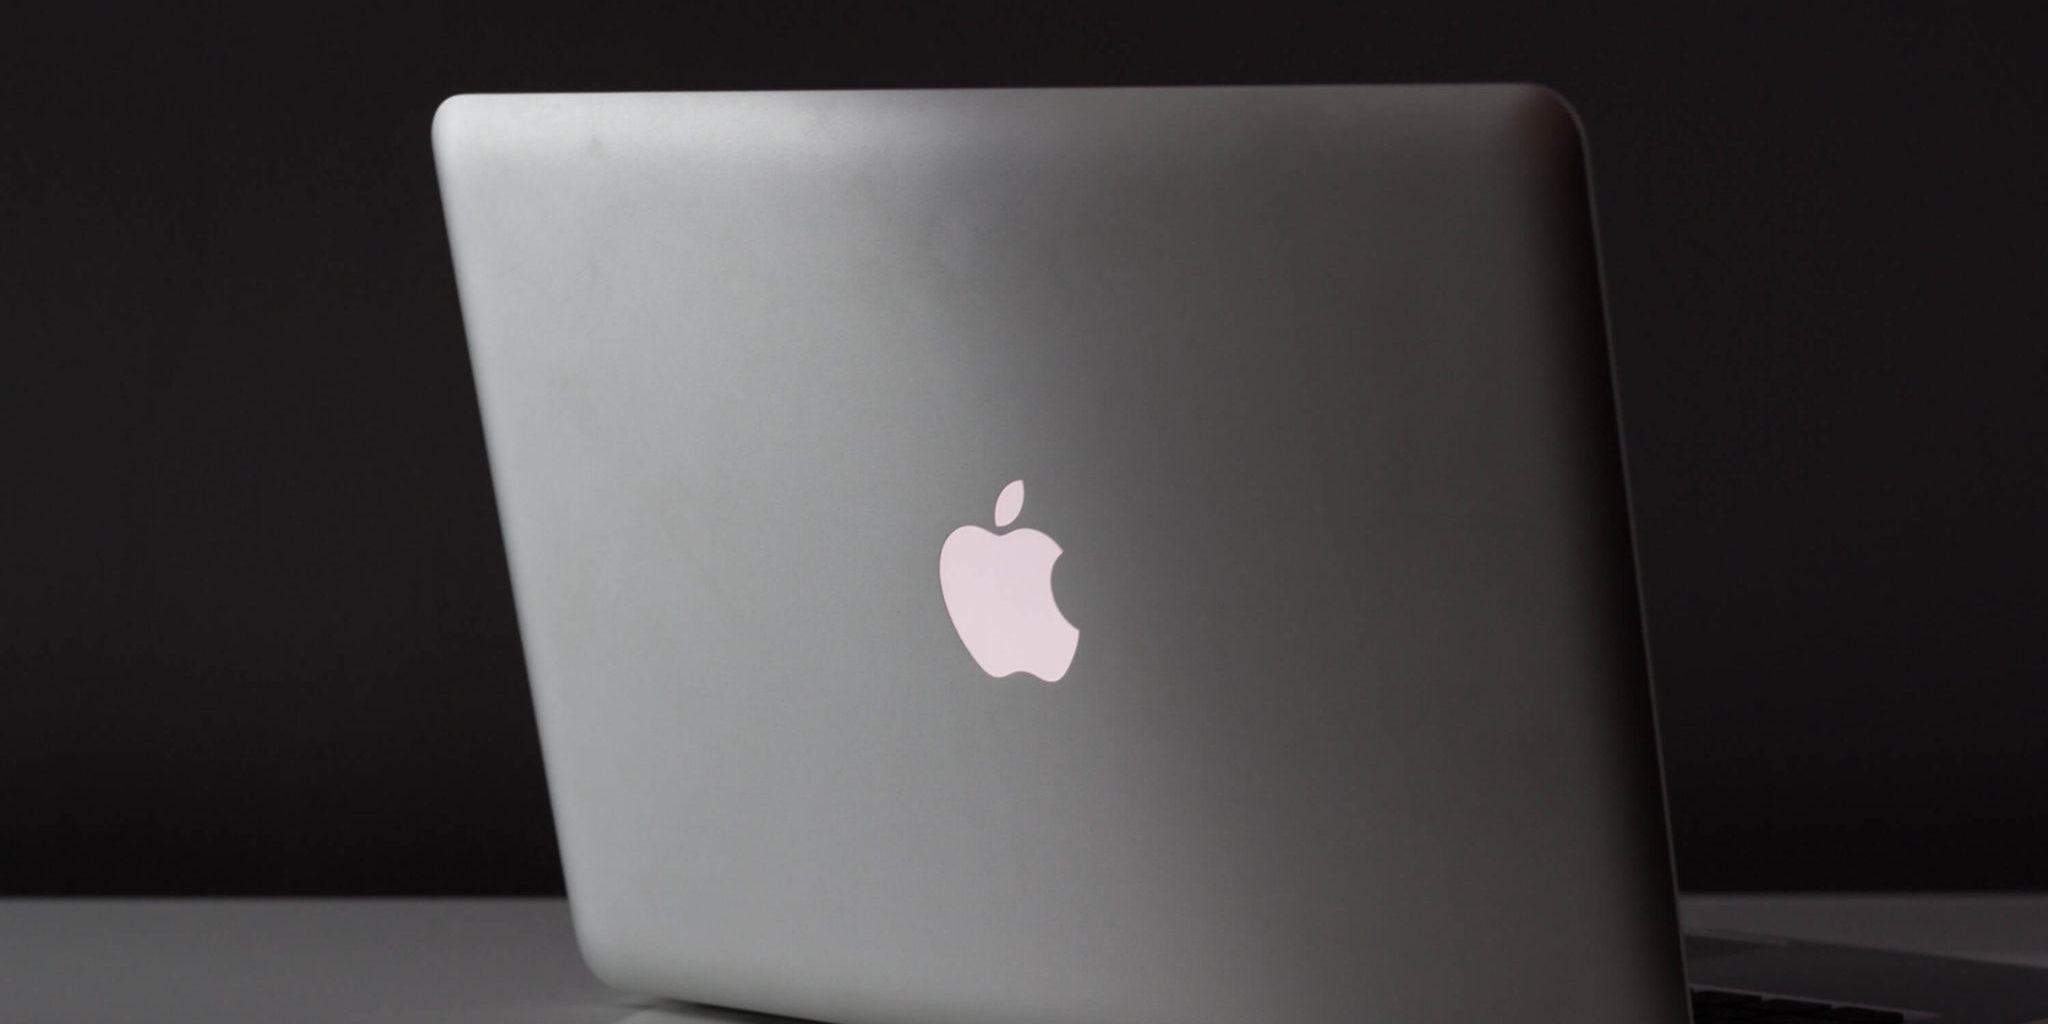 Here's how to handle MacBook Screen repair